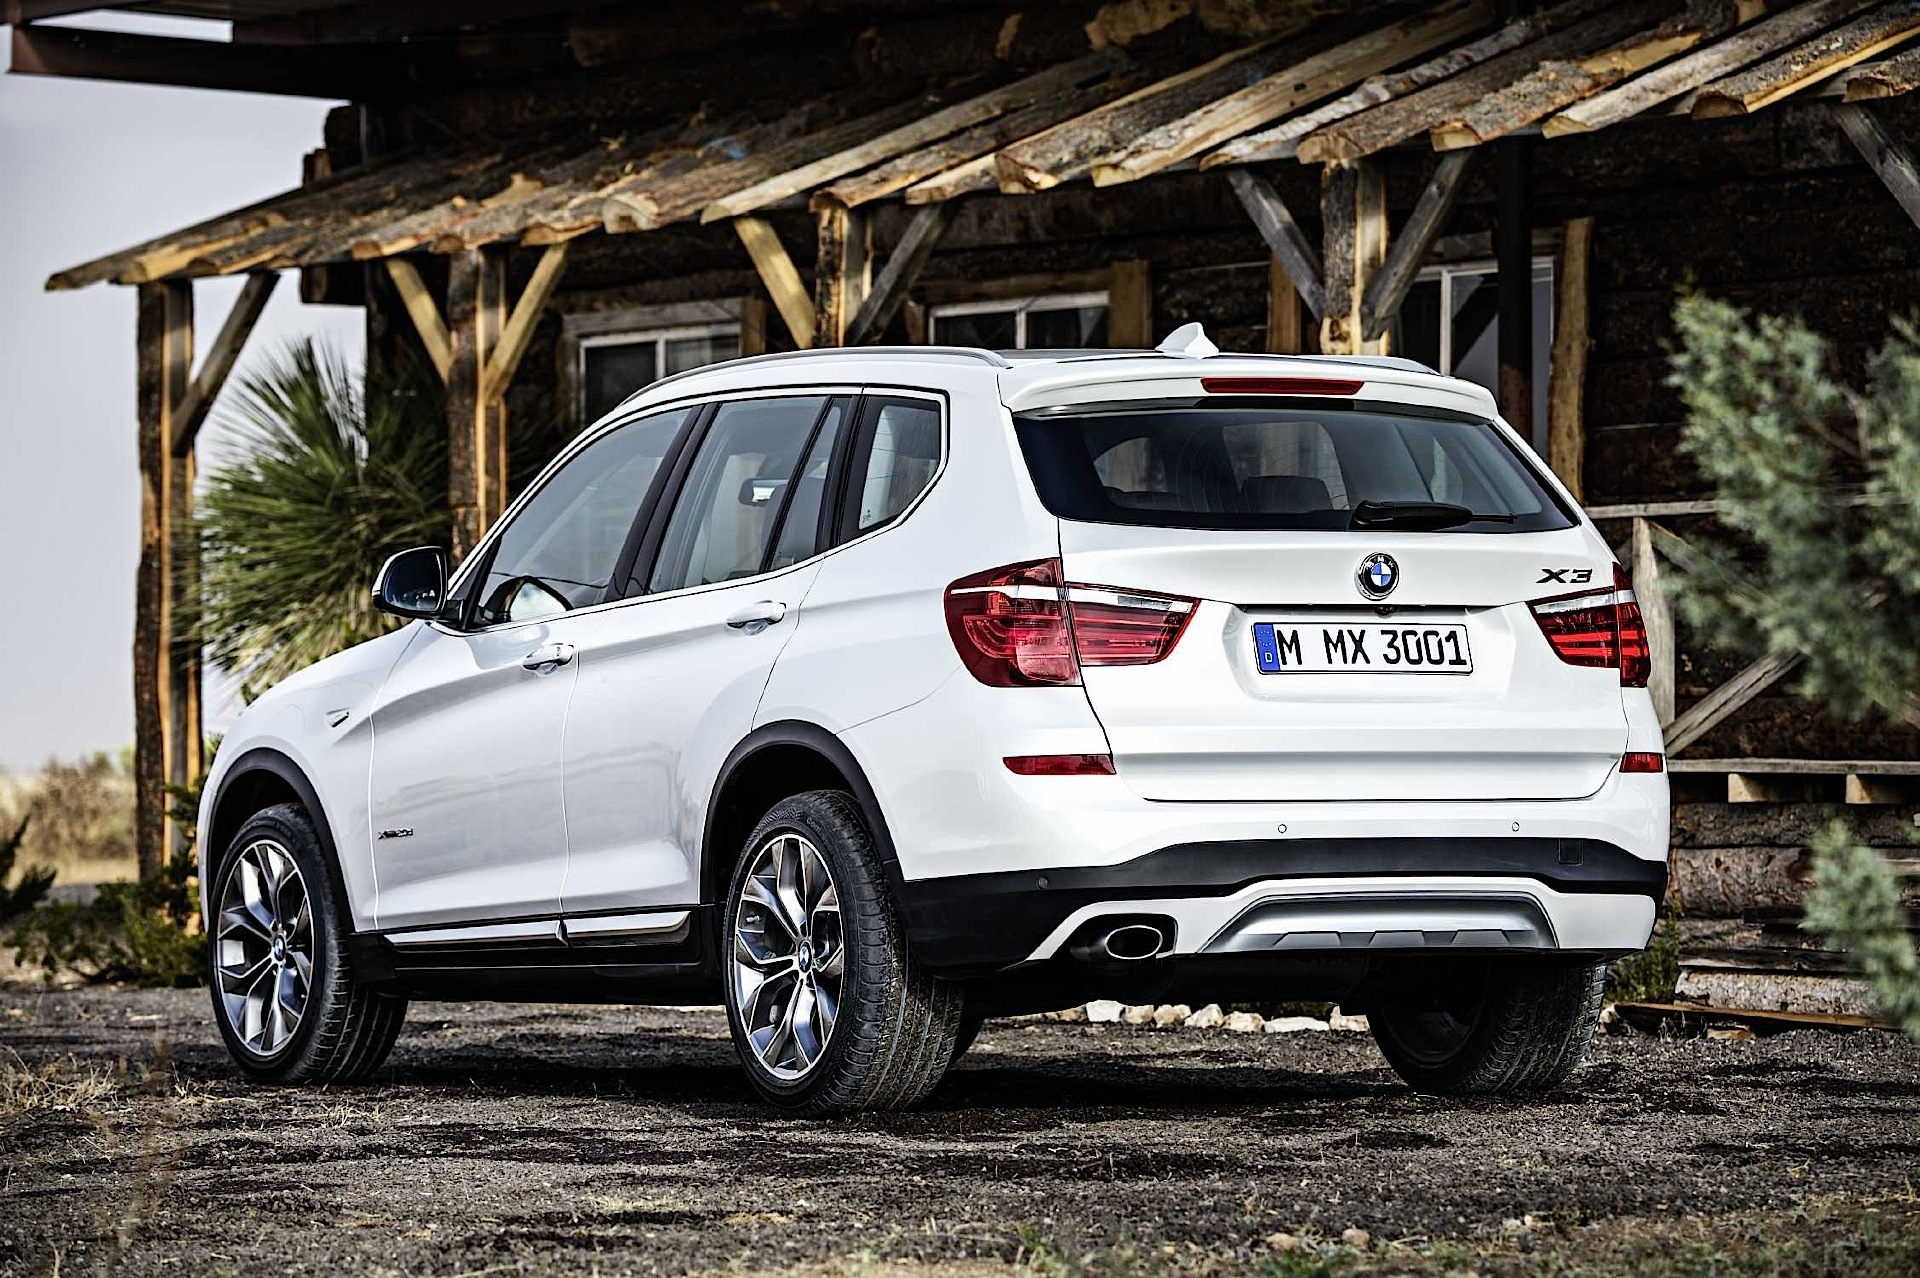 BMW X3 (F25) - 2014, 2015, 2016, 2017 - autoevolution